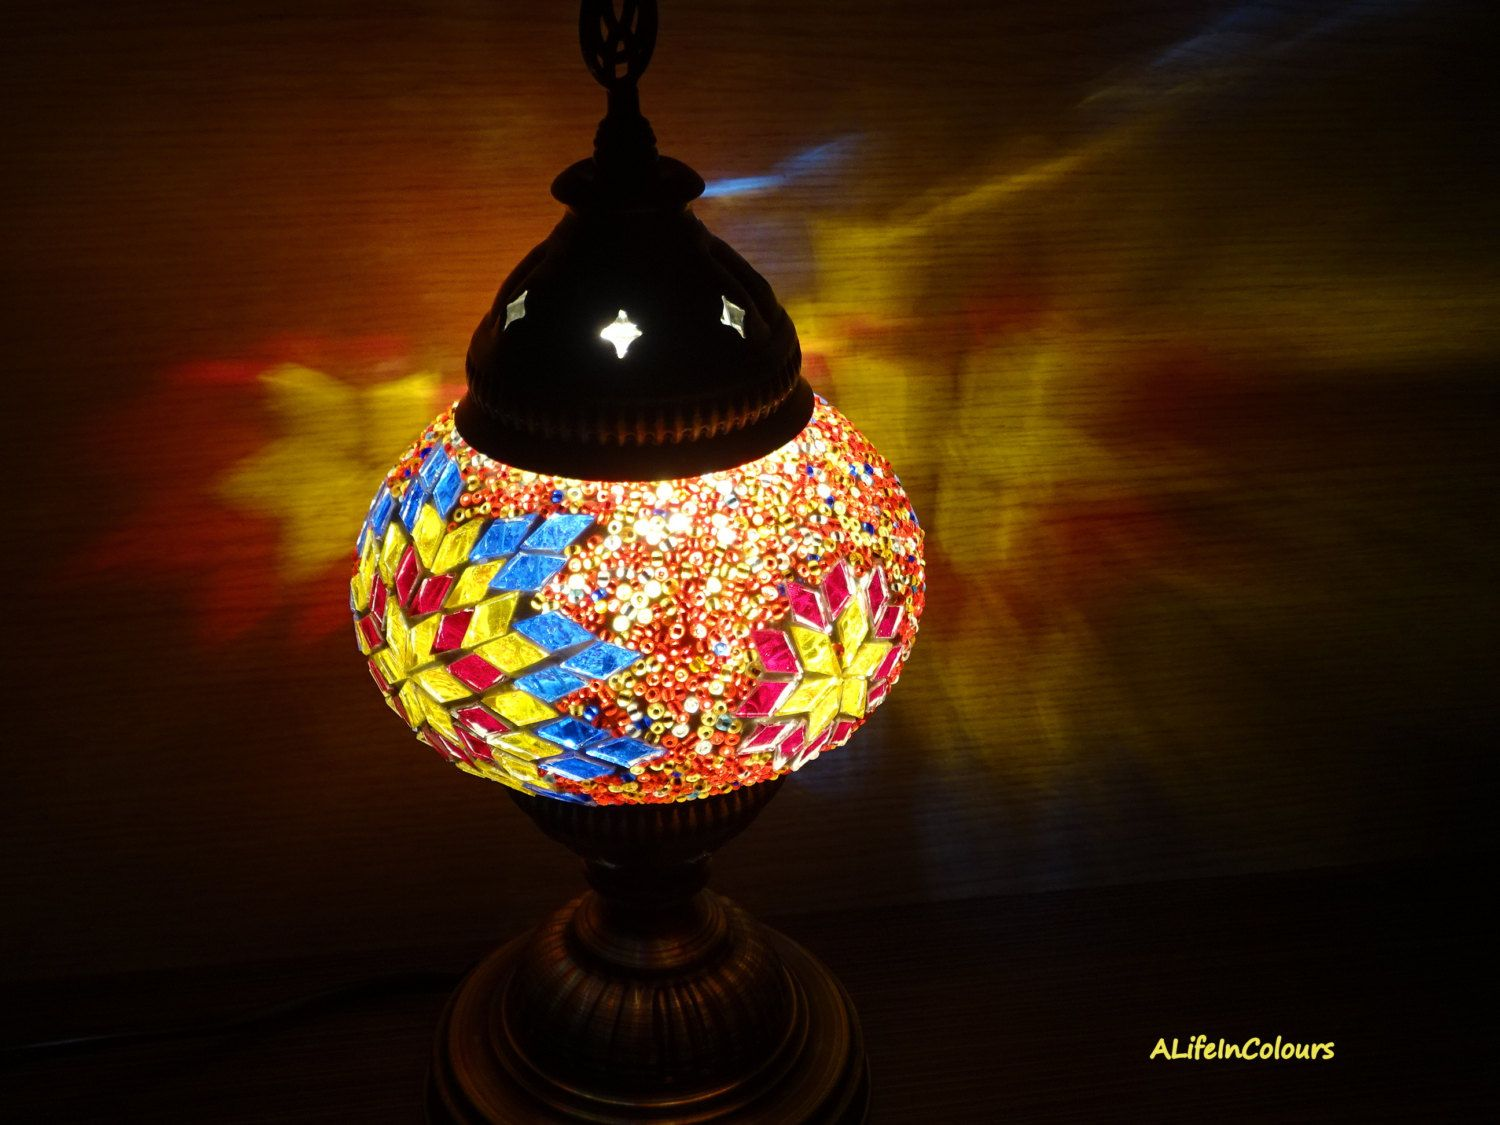 Authentic Handmade Unique Decorative Turkish Colourful Glass Mosaic Table  Lamp, Bedside Bedroom Lamp, Night